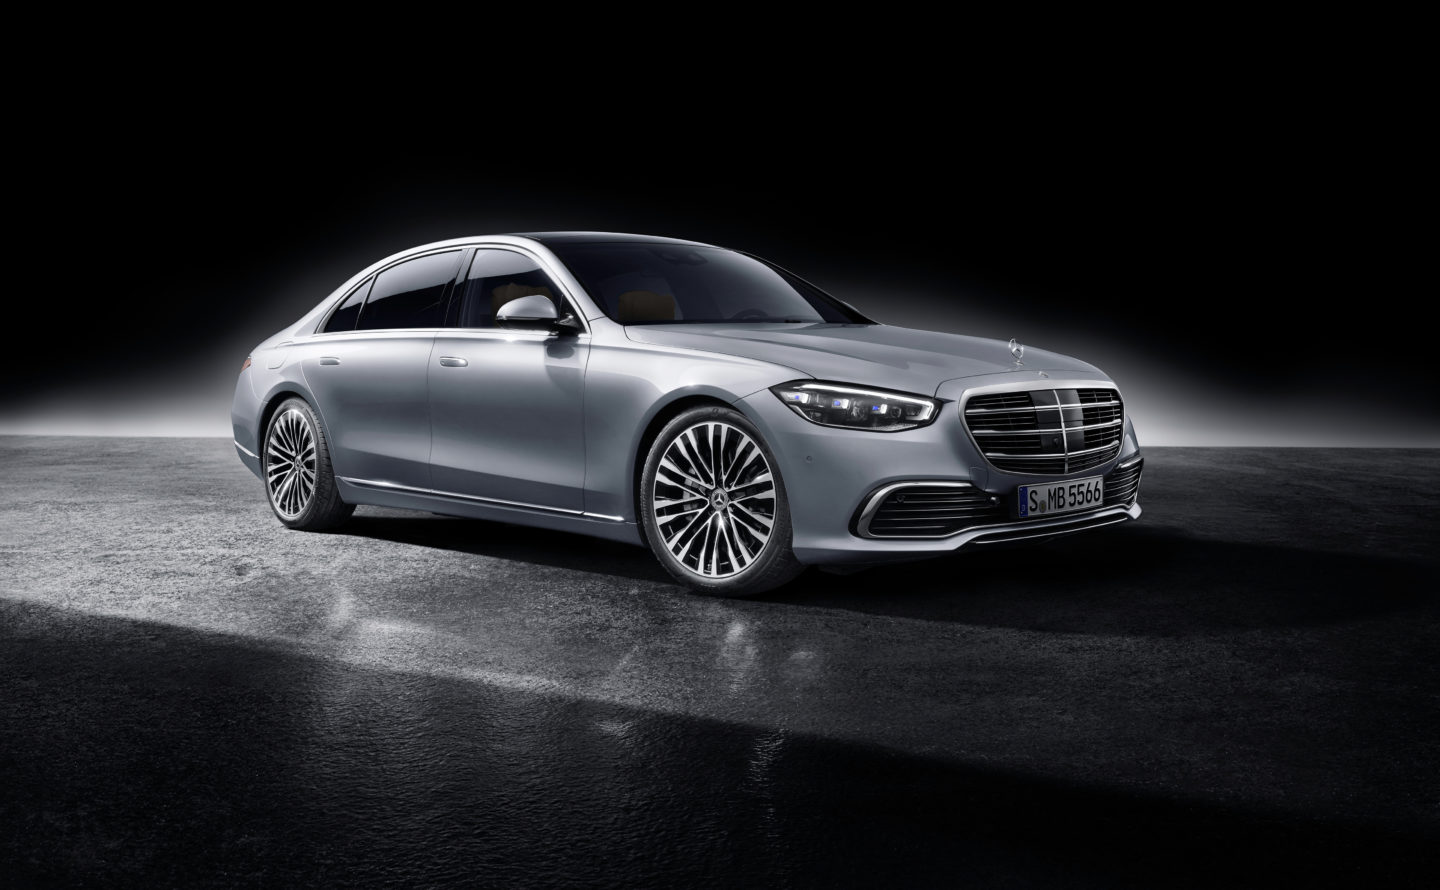 Mercedes-Benz S-Class, 2020, studio shot, exterior: hightech silver